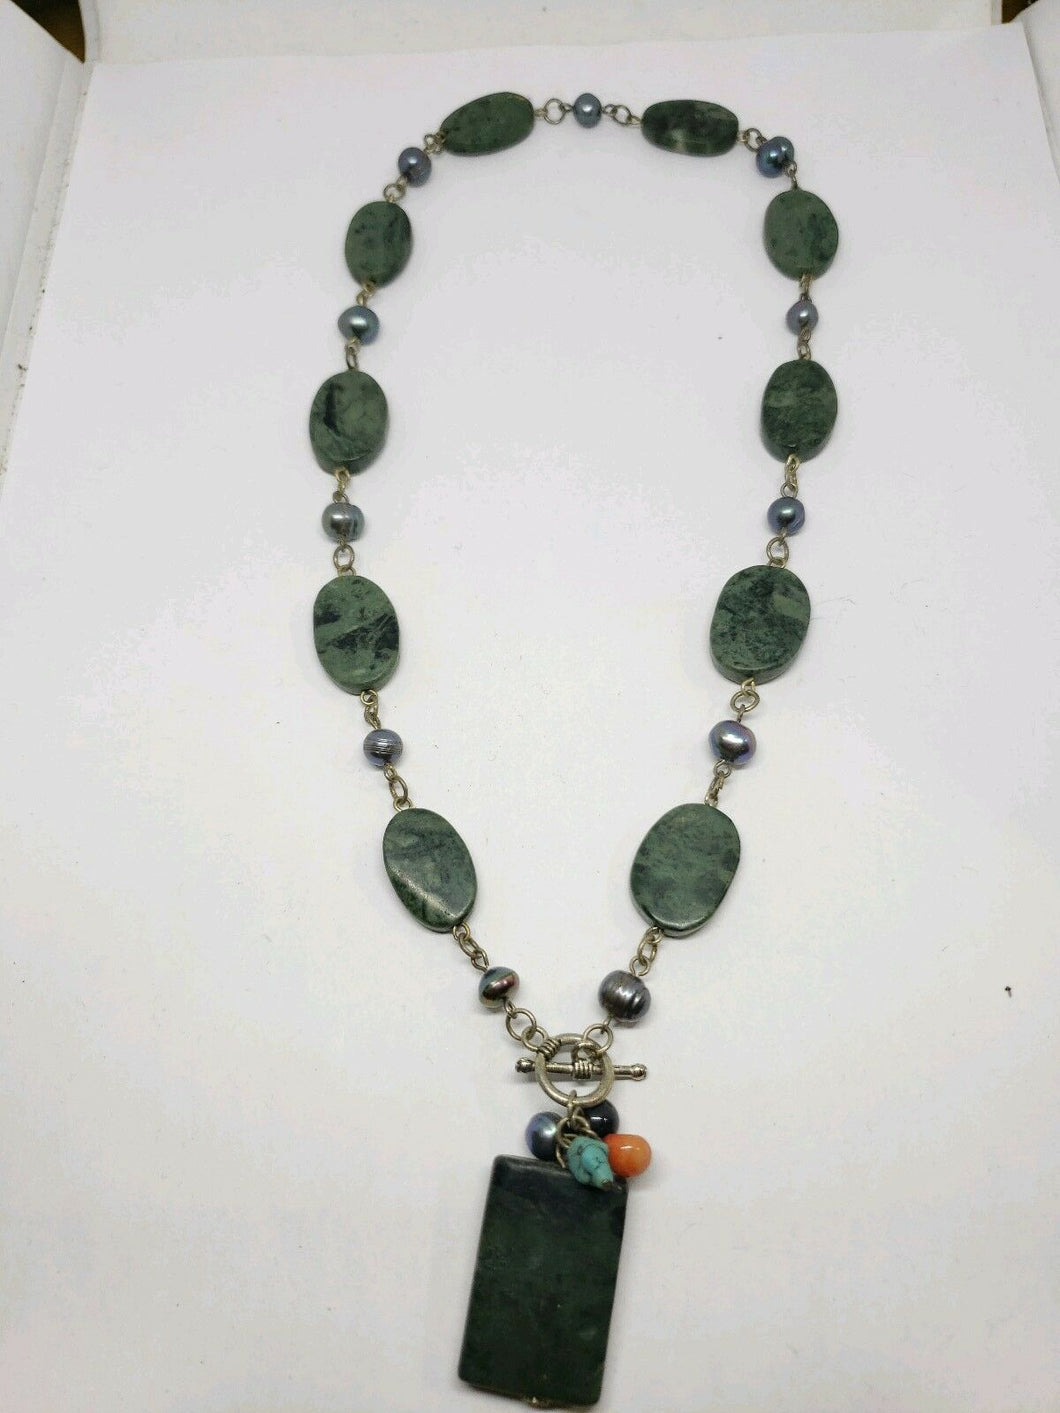 Handmade Jade And Peacock Black Pearl Necklace